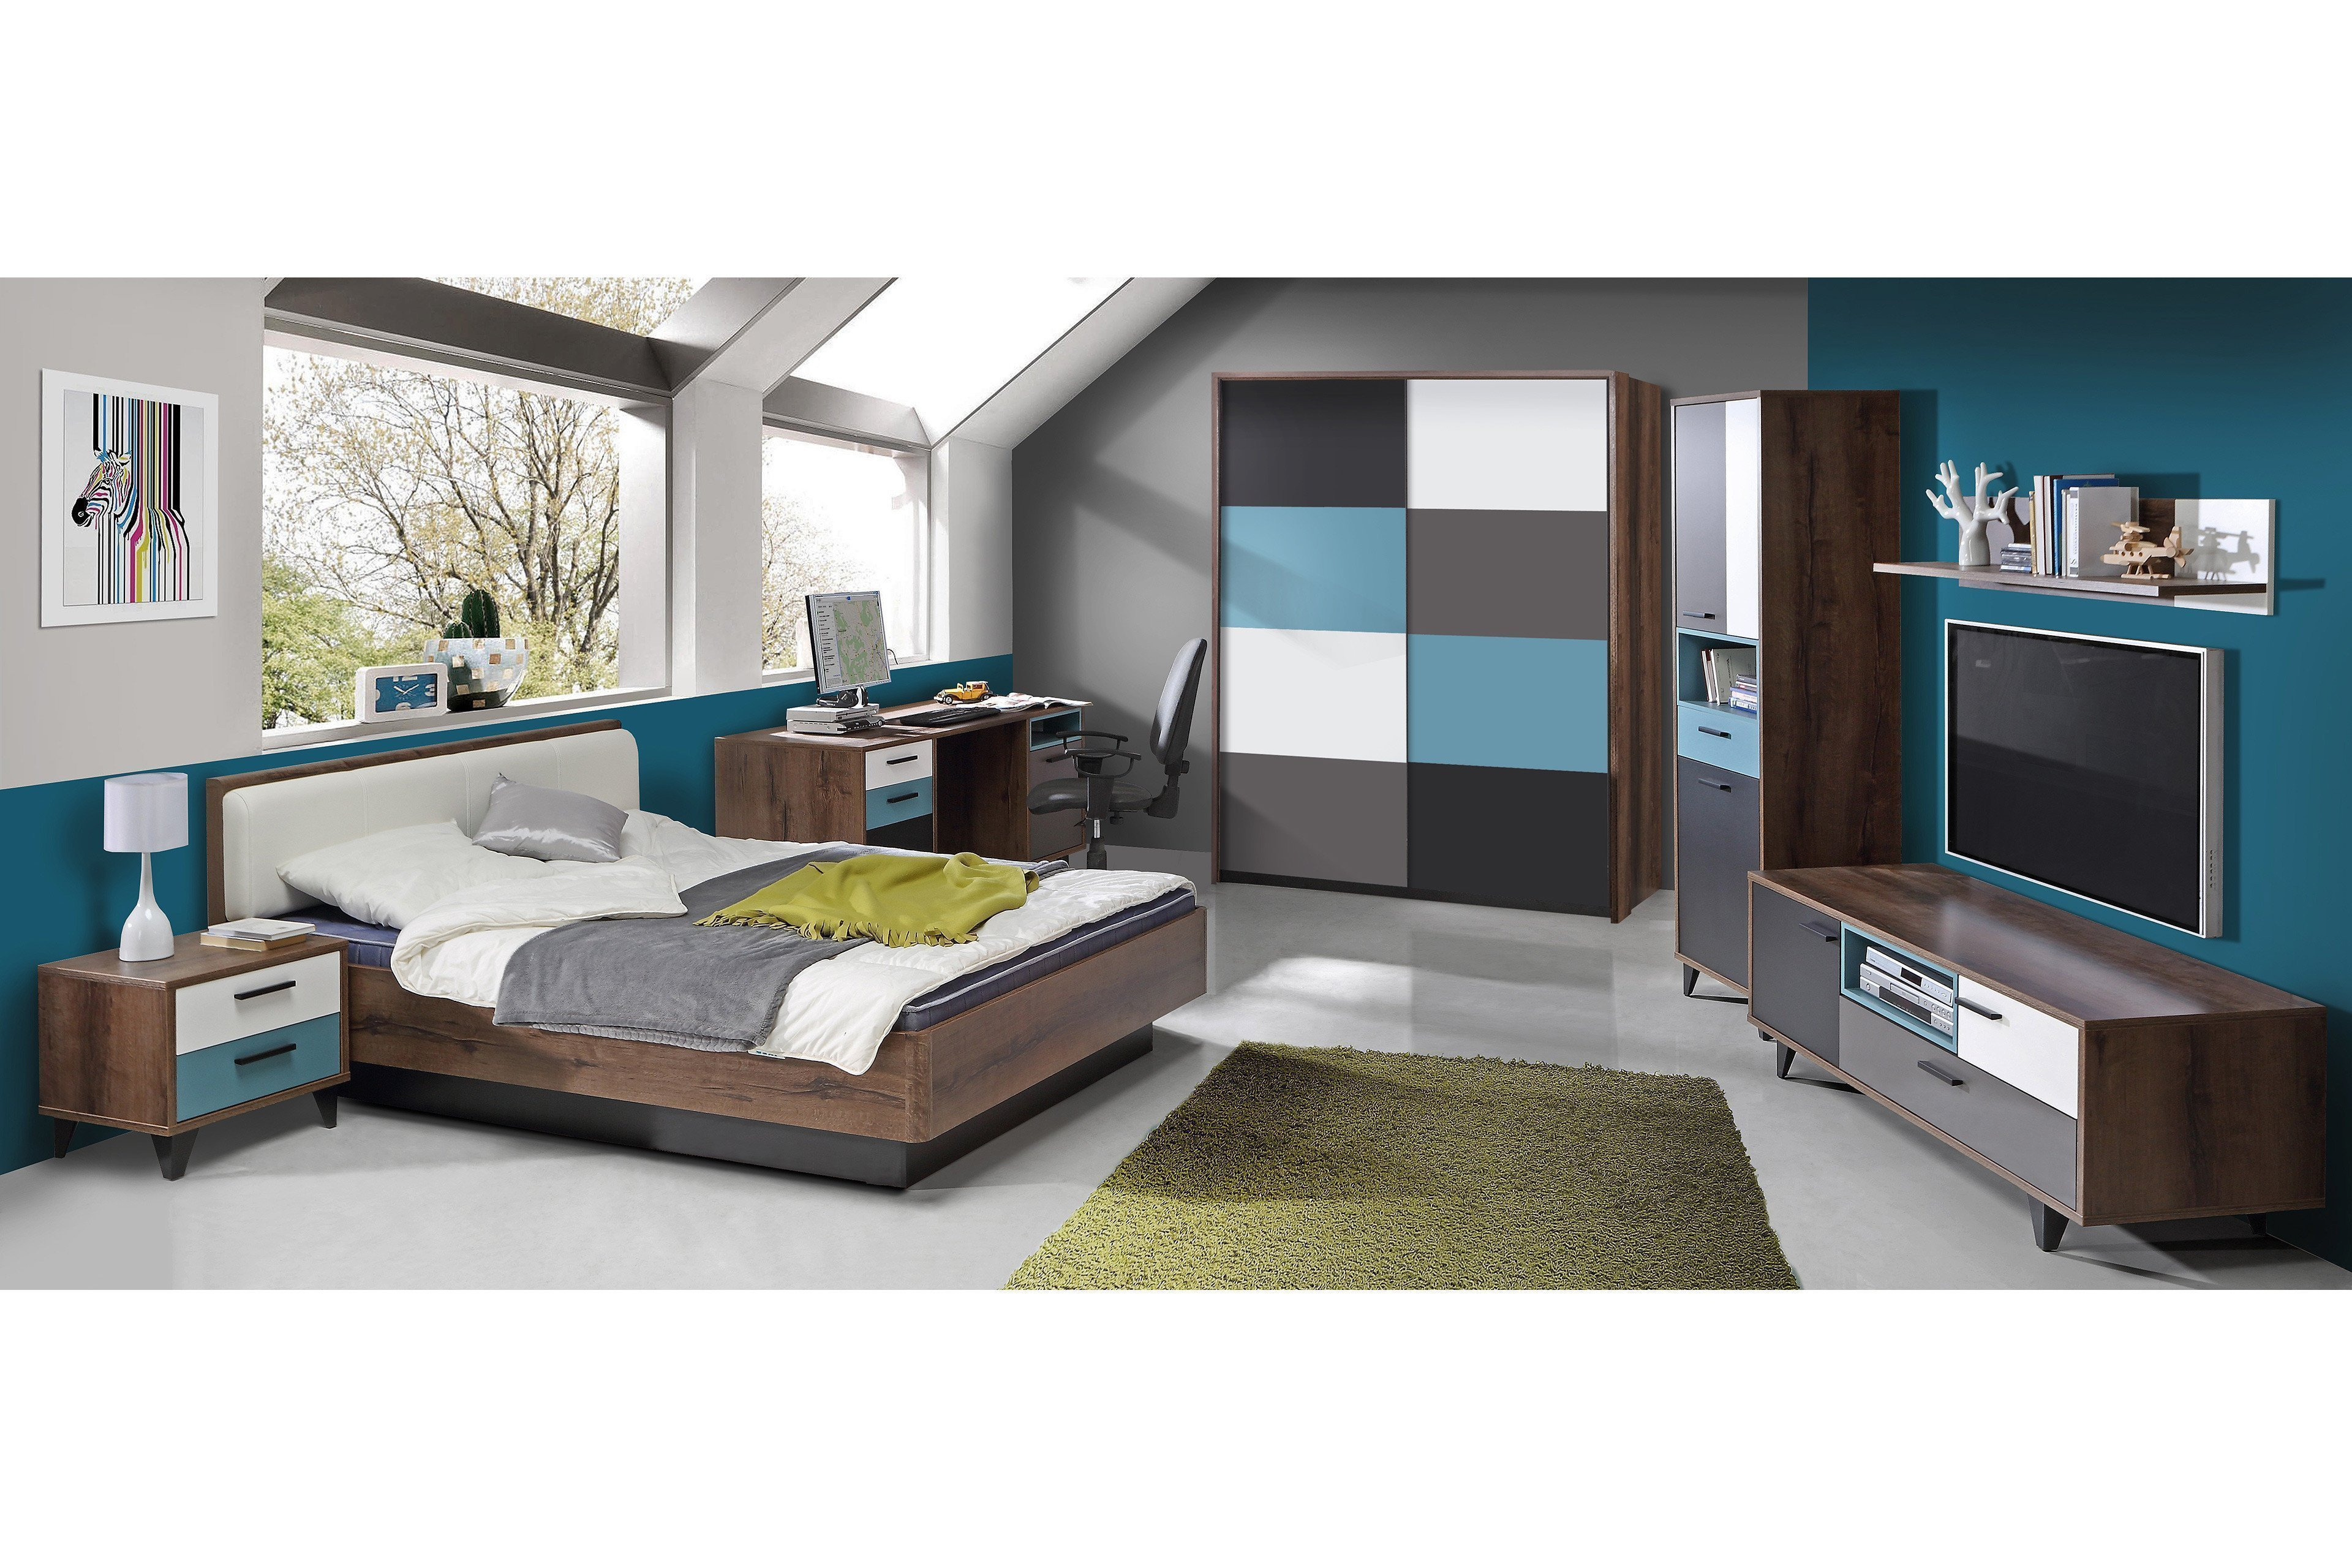 raven jugendzimmer 2 teilig von forte m bel letz ihr. Black Bedroom Furniture Sets. Home Design Ideas